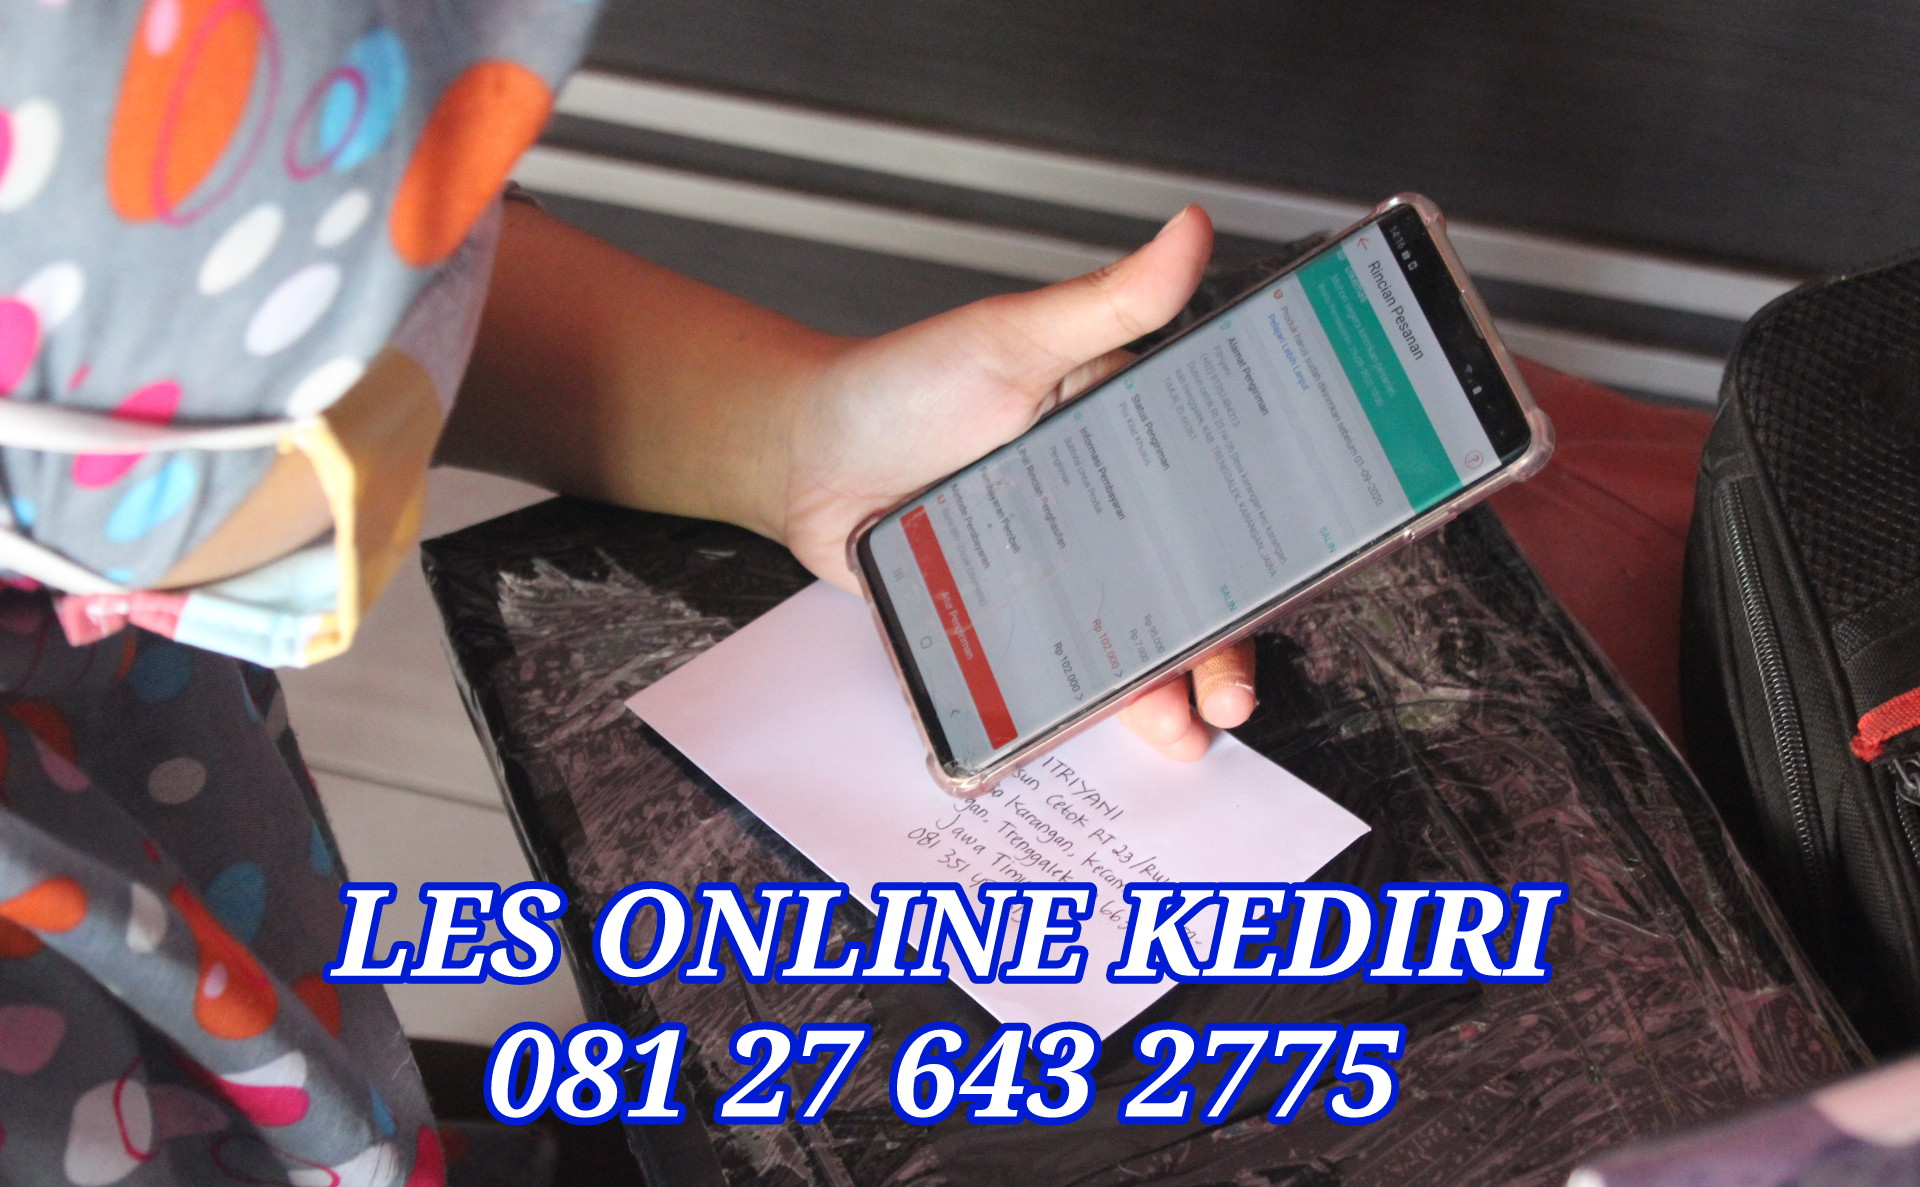 Les Private Online Kediri